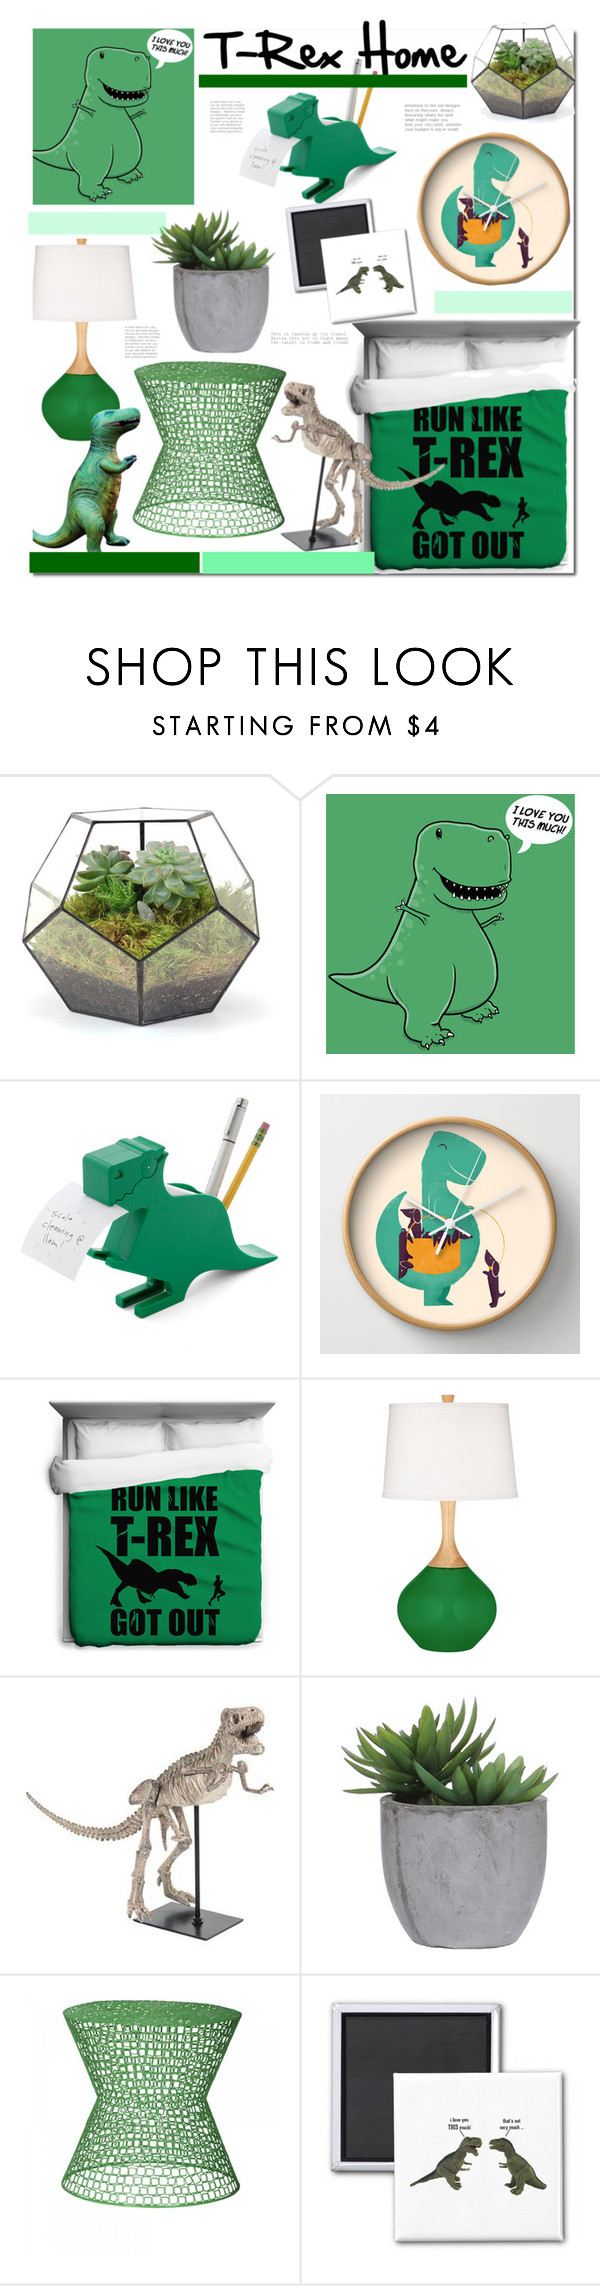 """""""T-Rex Home"""" by kusja ❤ liked on Polyvore featuring interior, interiors, interior design, home, home decor, interior decorating, Kikkerland, Lux-Art Silks, Sasson Home and Dinosaurs"""